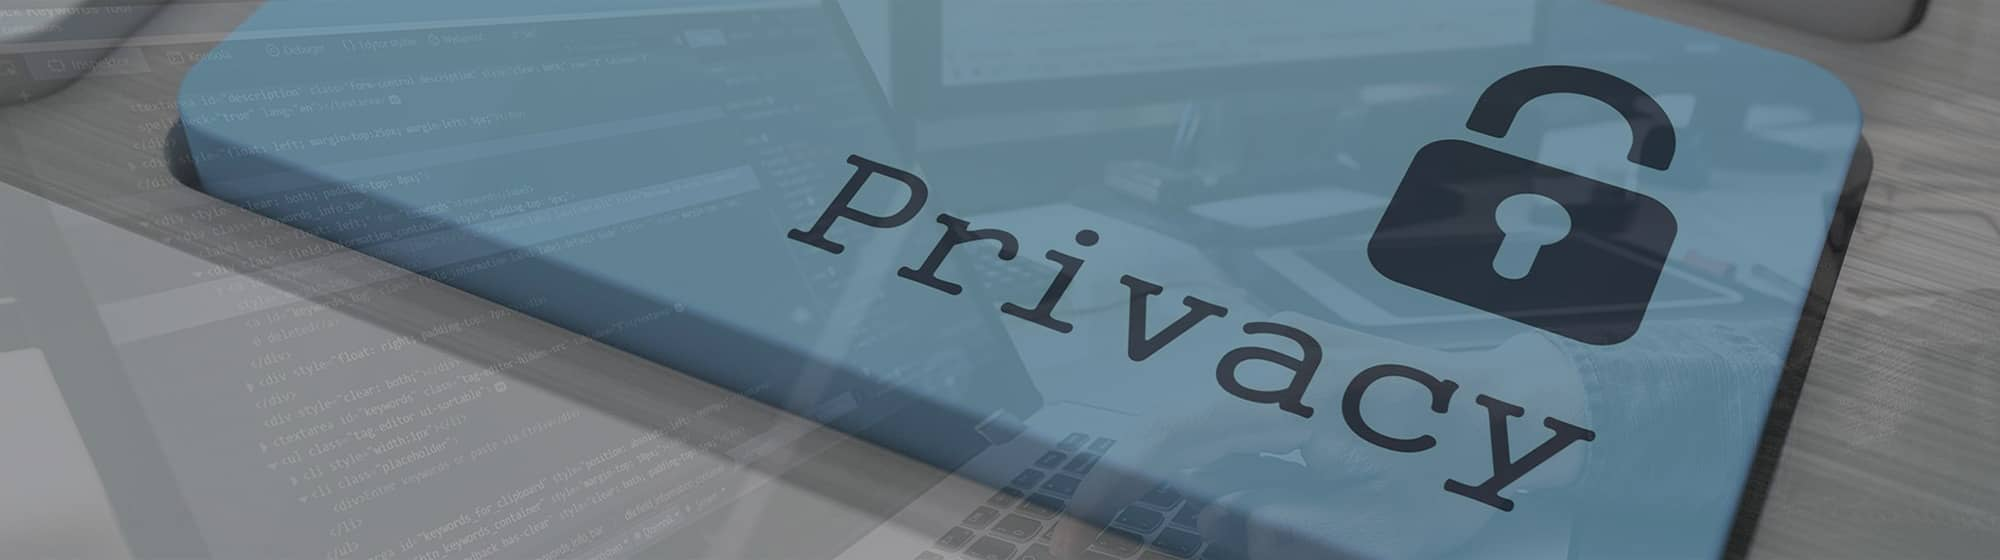 UK SEO Expert Privacy Policy